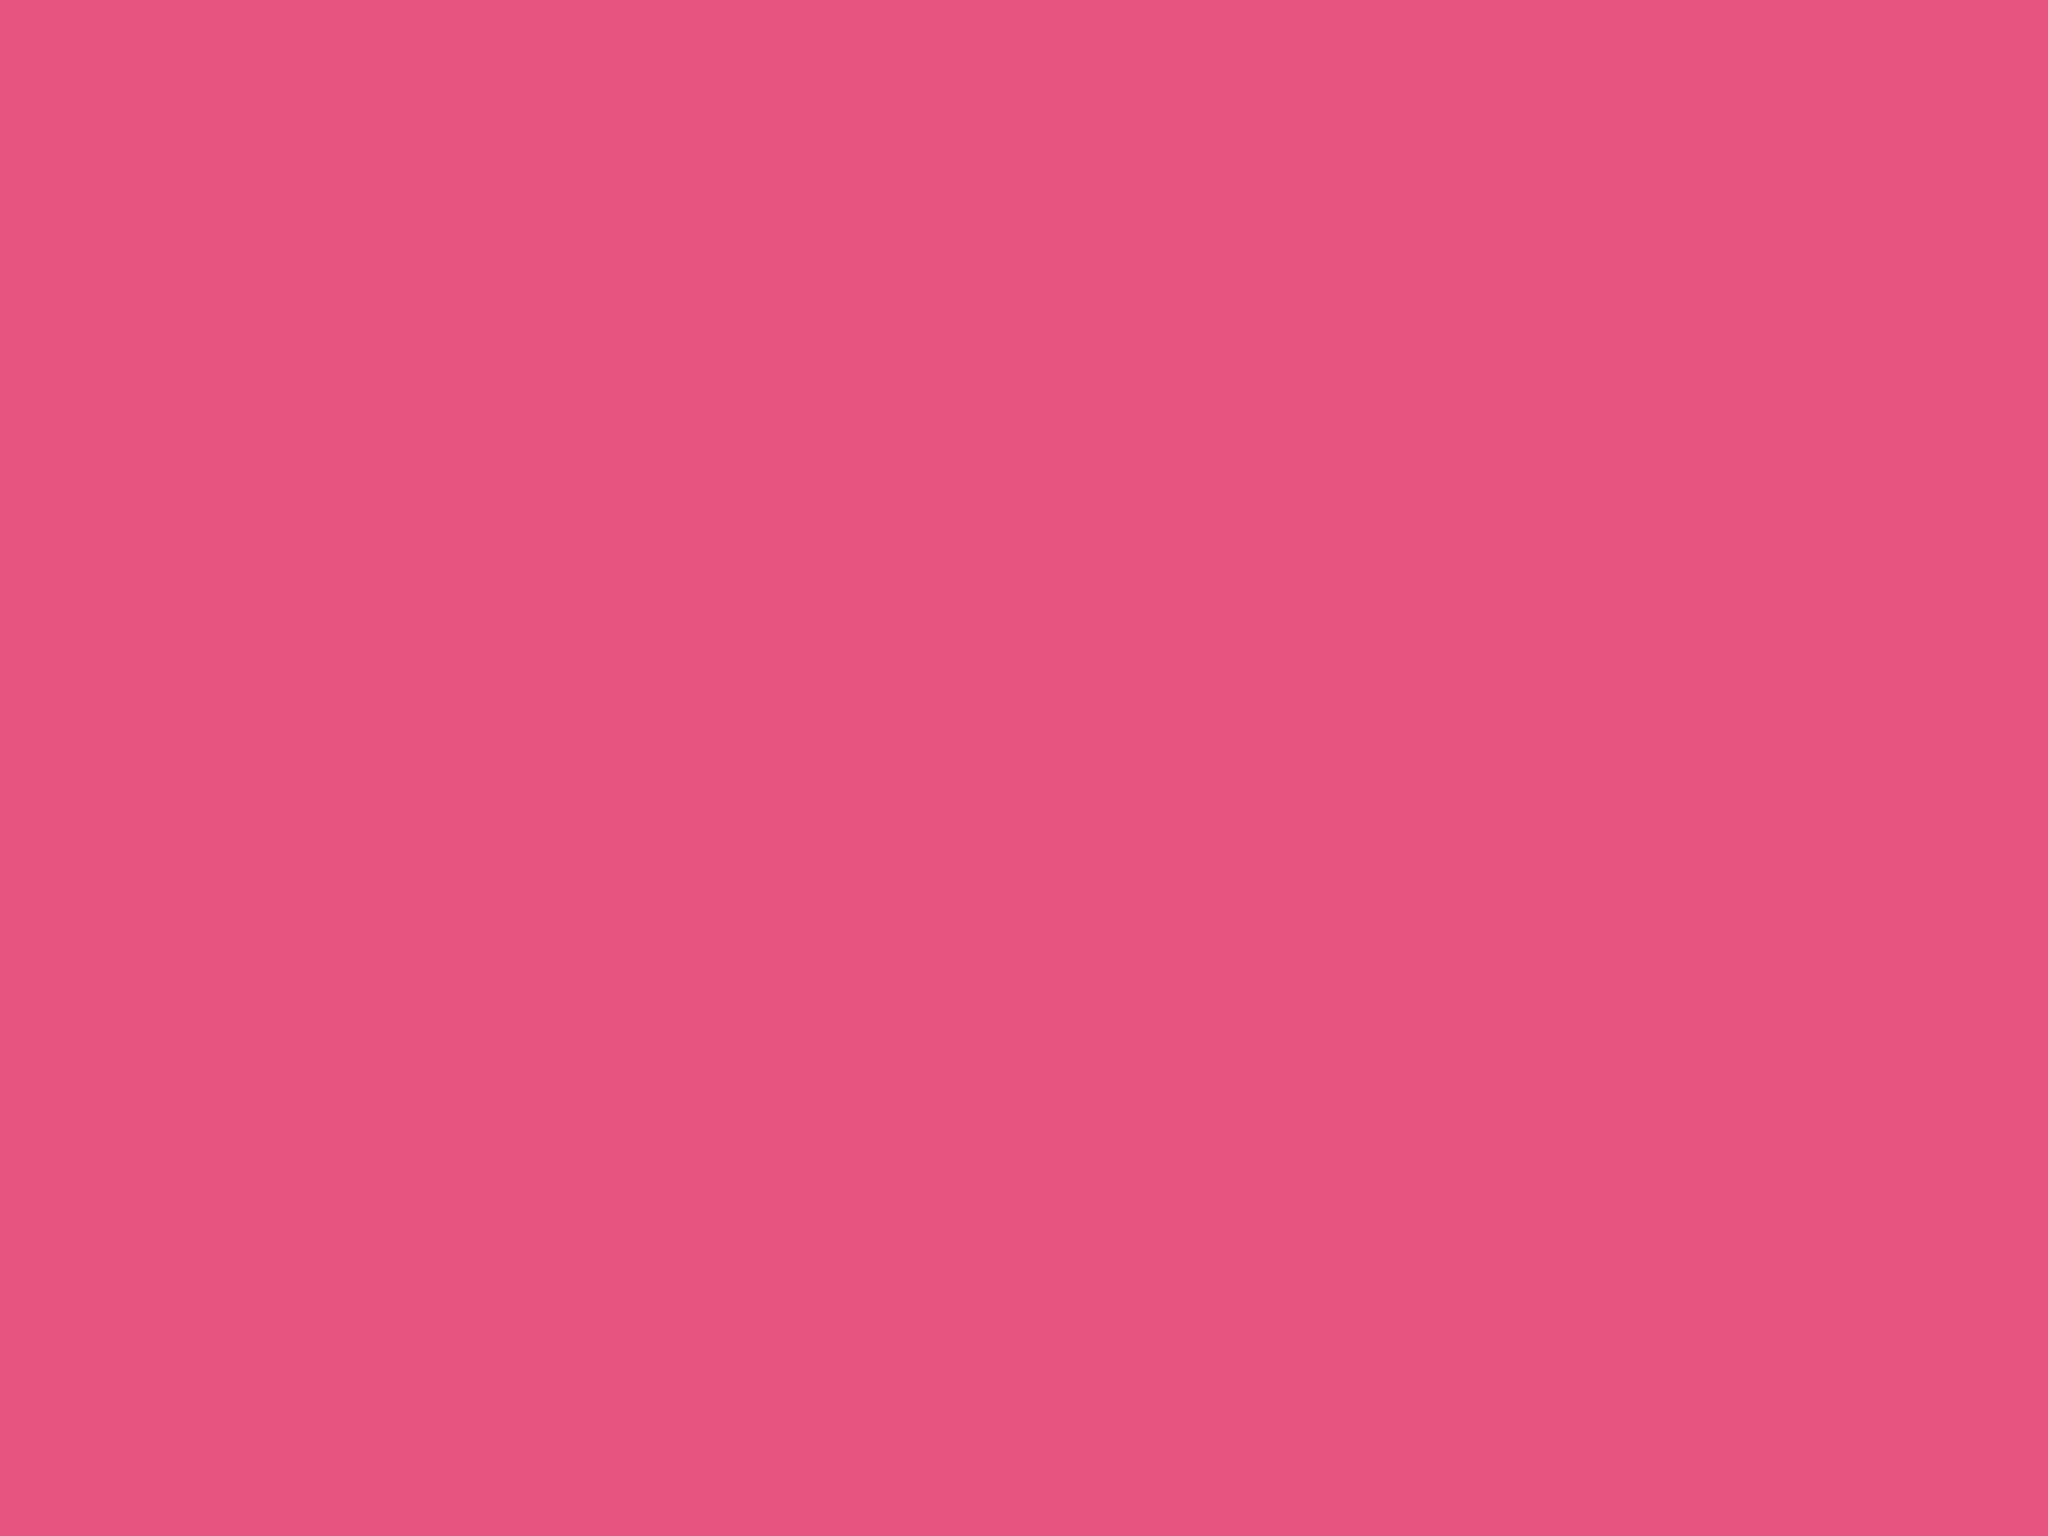 2048x1536 Dark Pink Solid Color Background